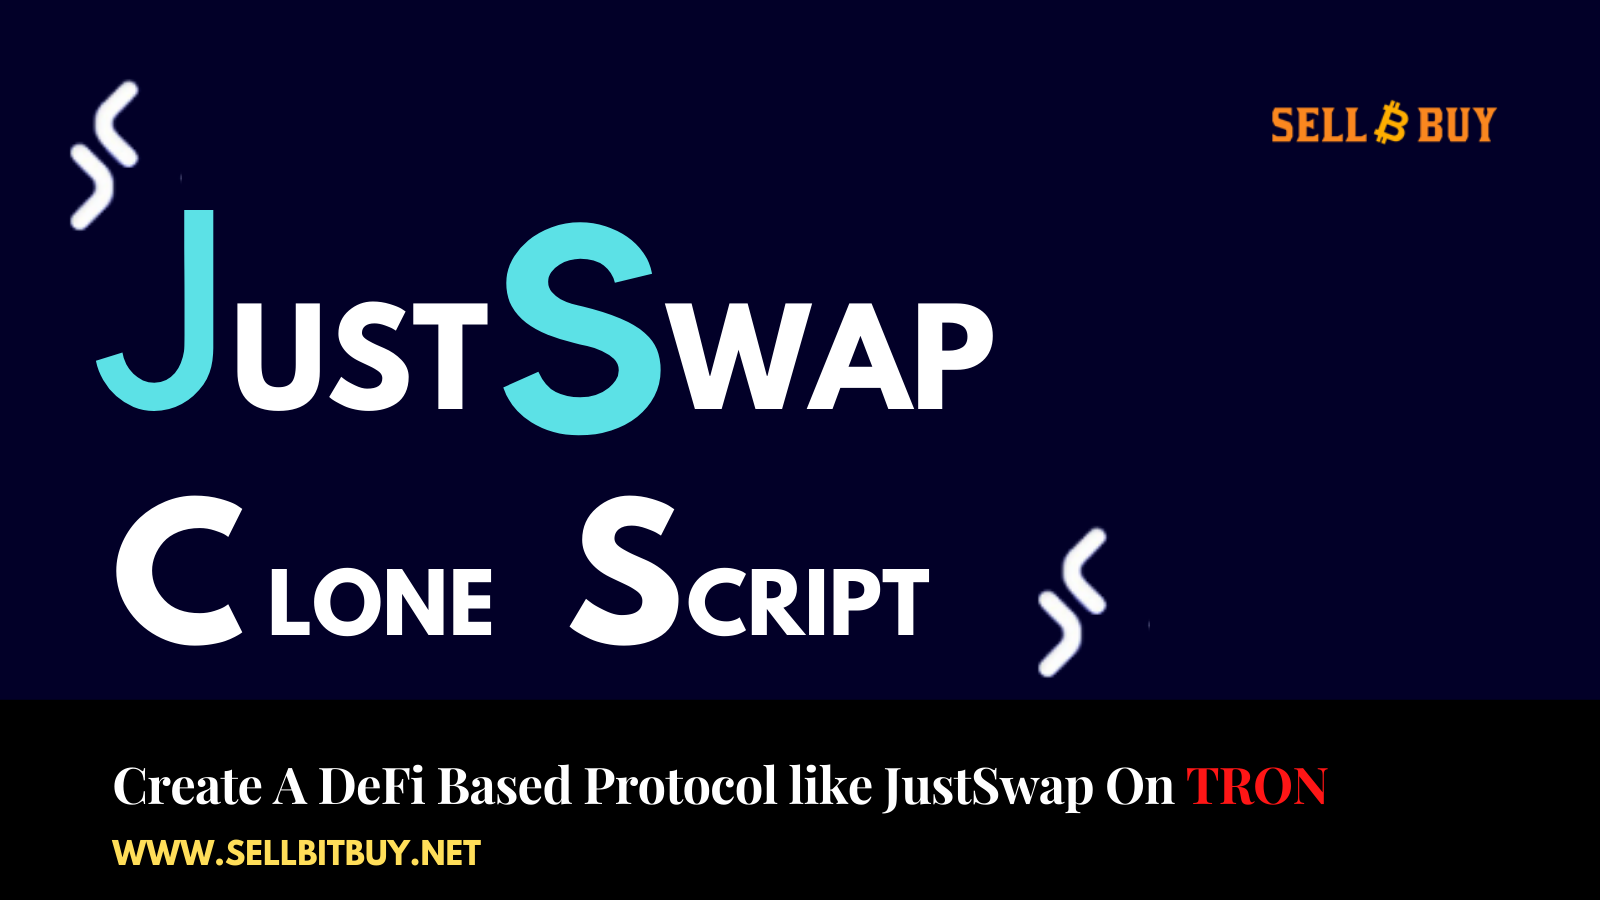 JustSwap Clone Script - To Create a Decentralized Protocol Like JustSwap On TRON